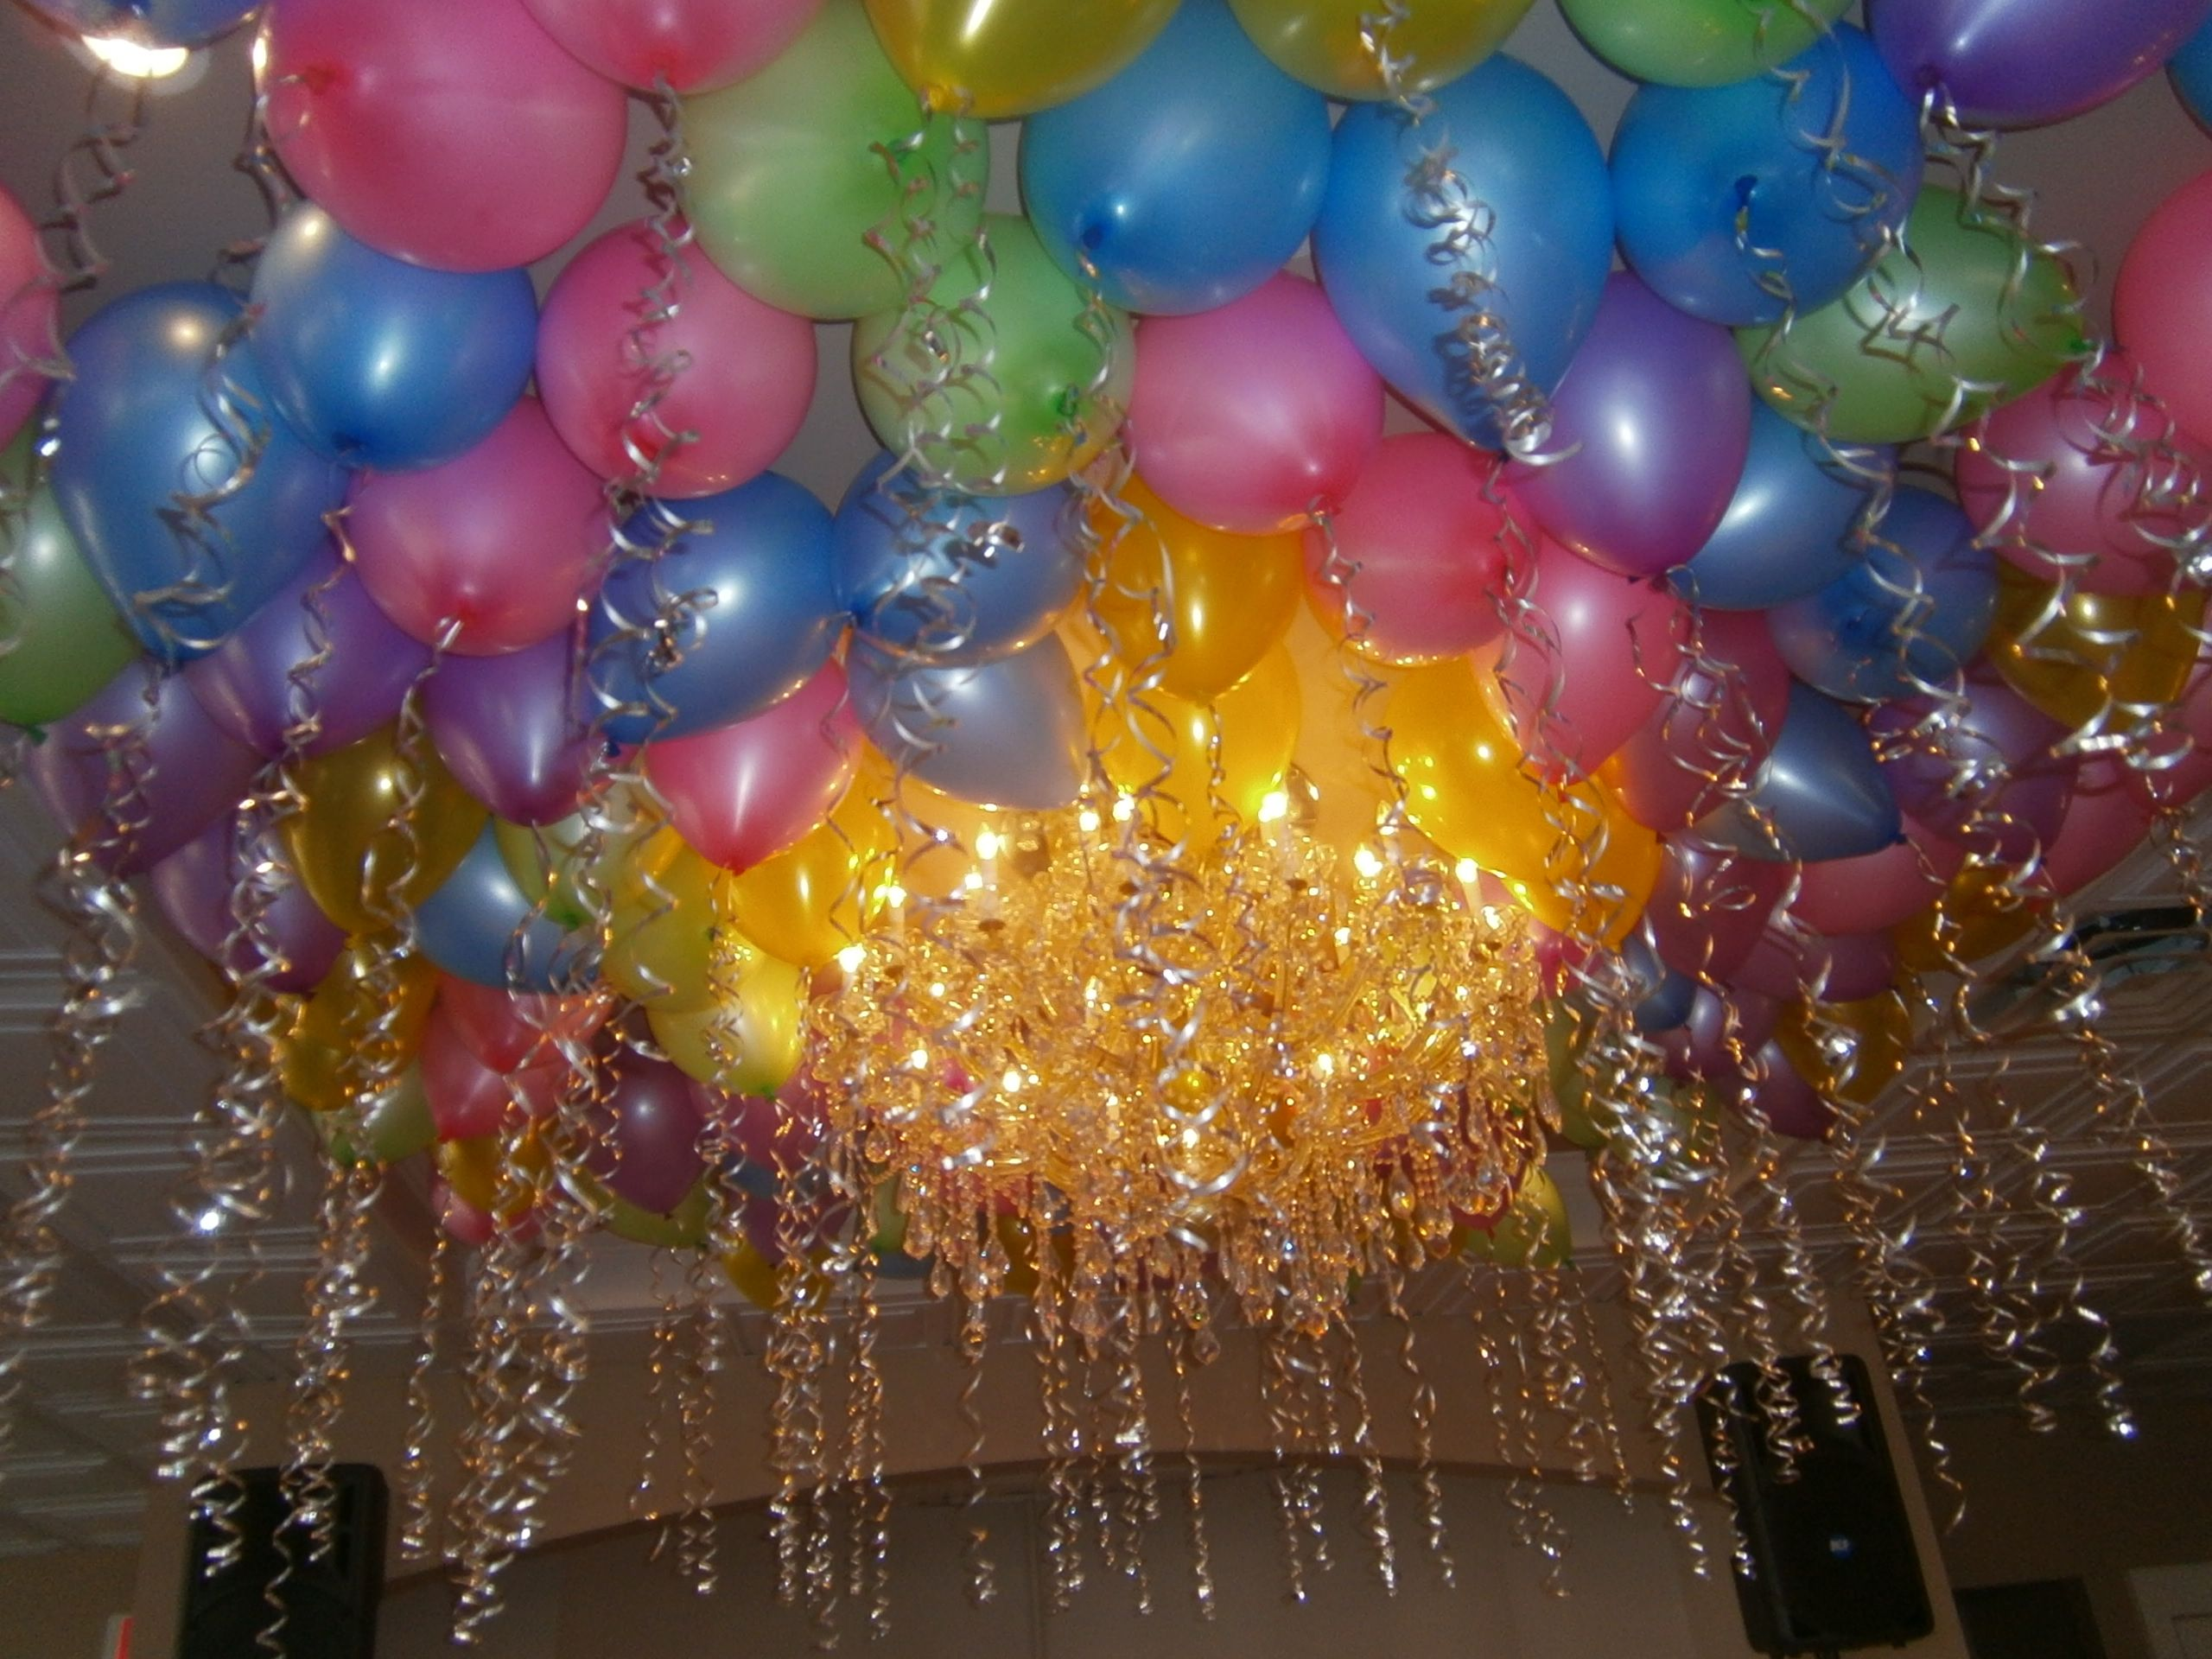 ceiling full of balloons and streamers www total party com can be